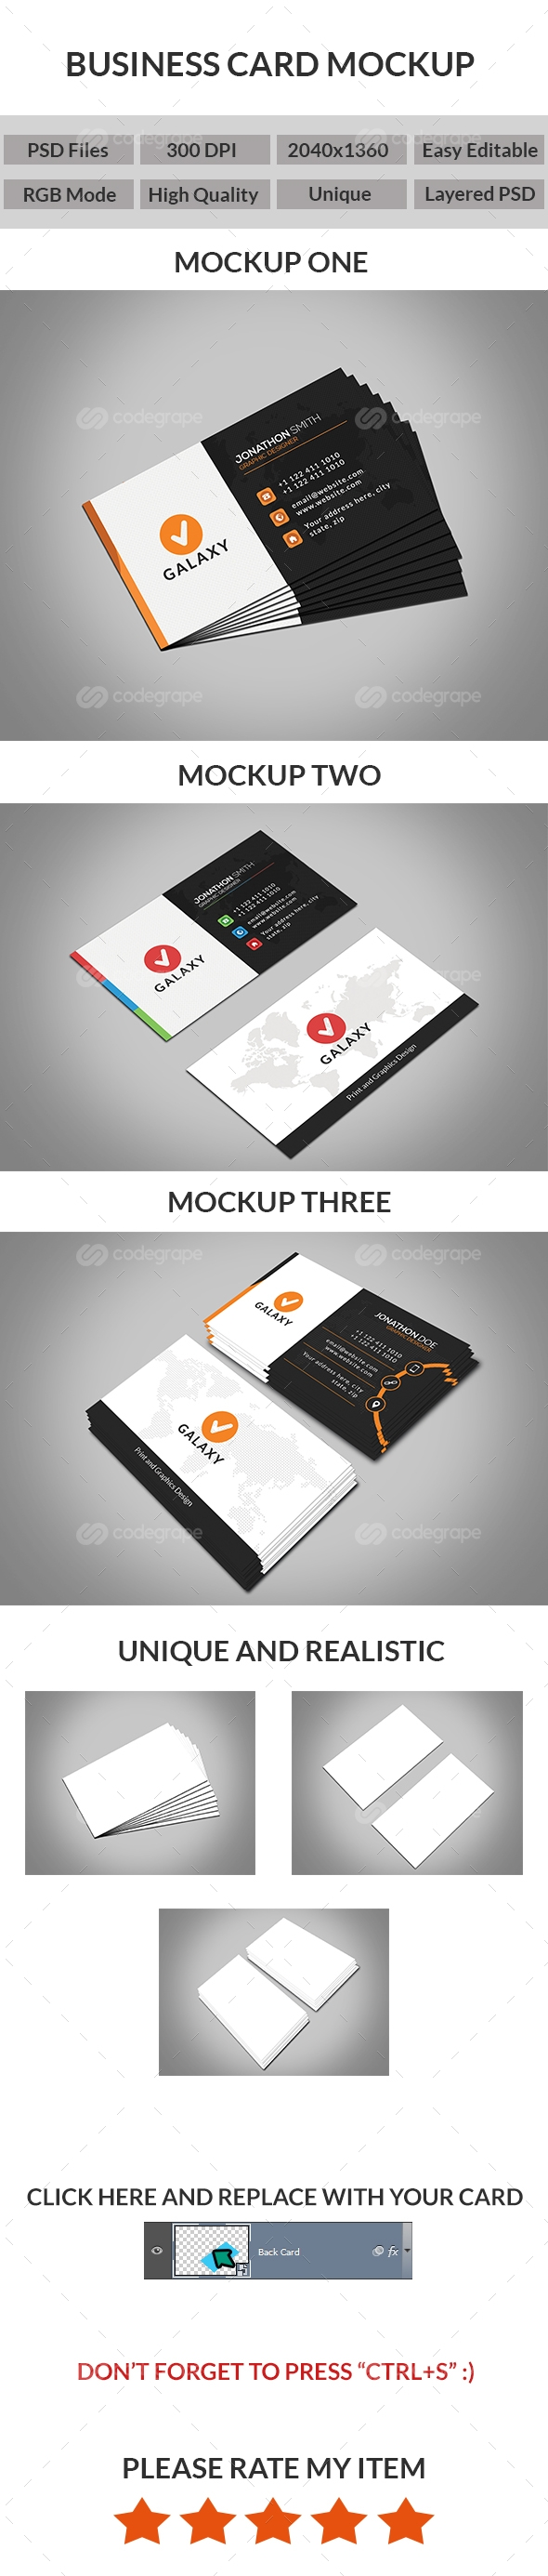 Unique Realistic Business Card Mockups